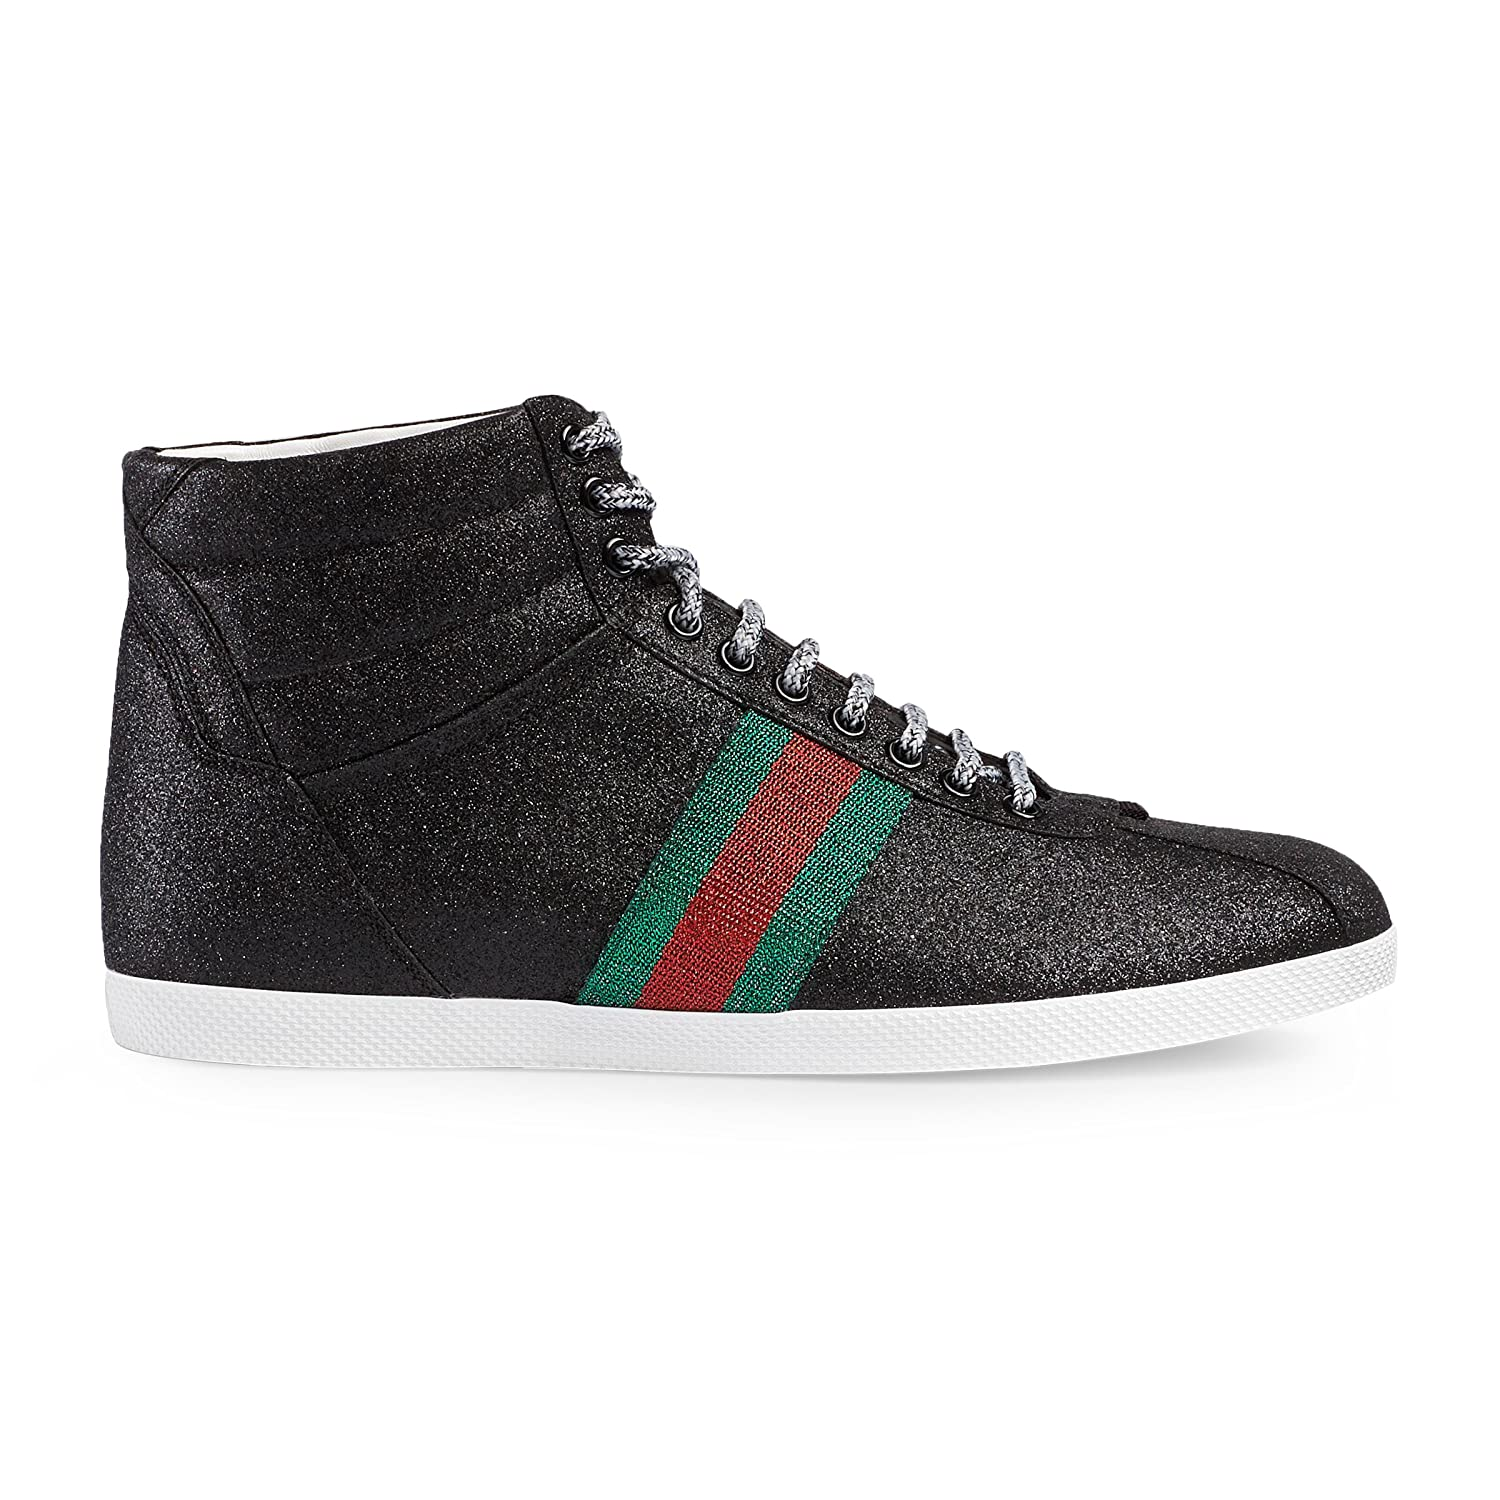 51eeb8afa26 Gucci Men s Glitter Web High-top Sneaker